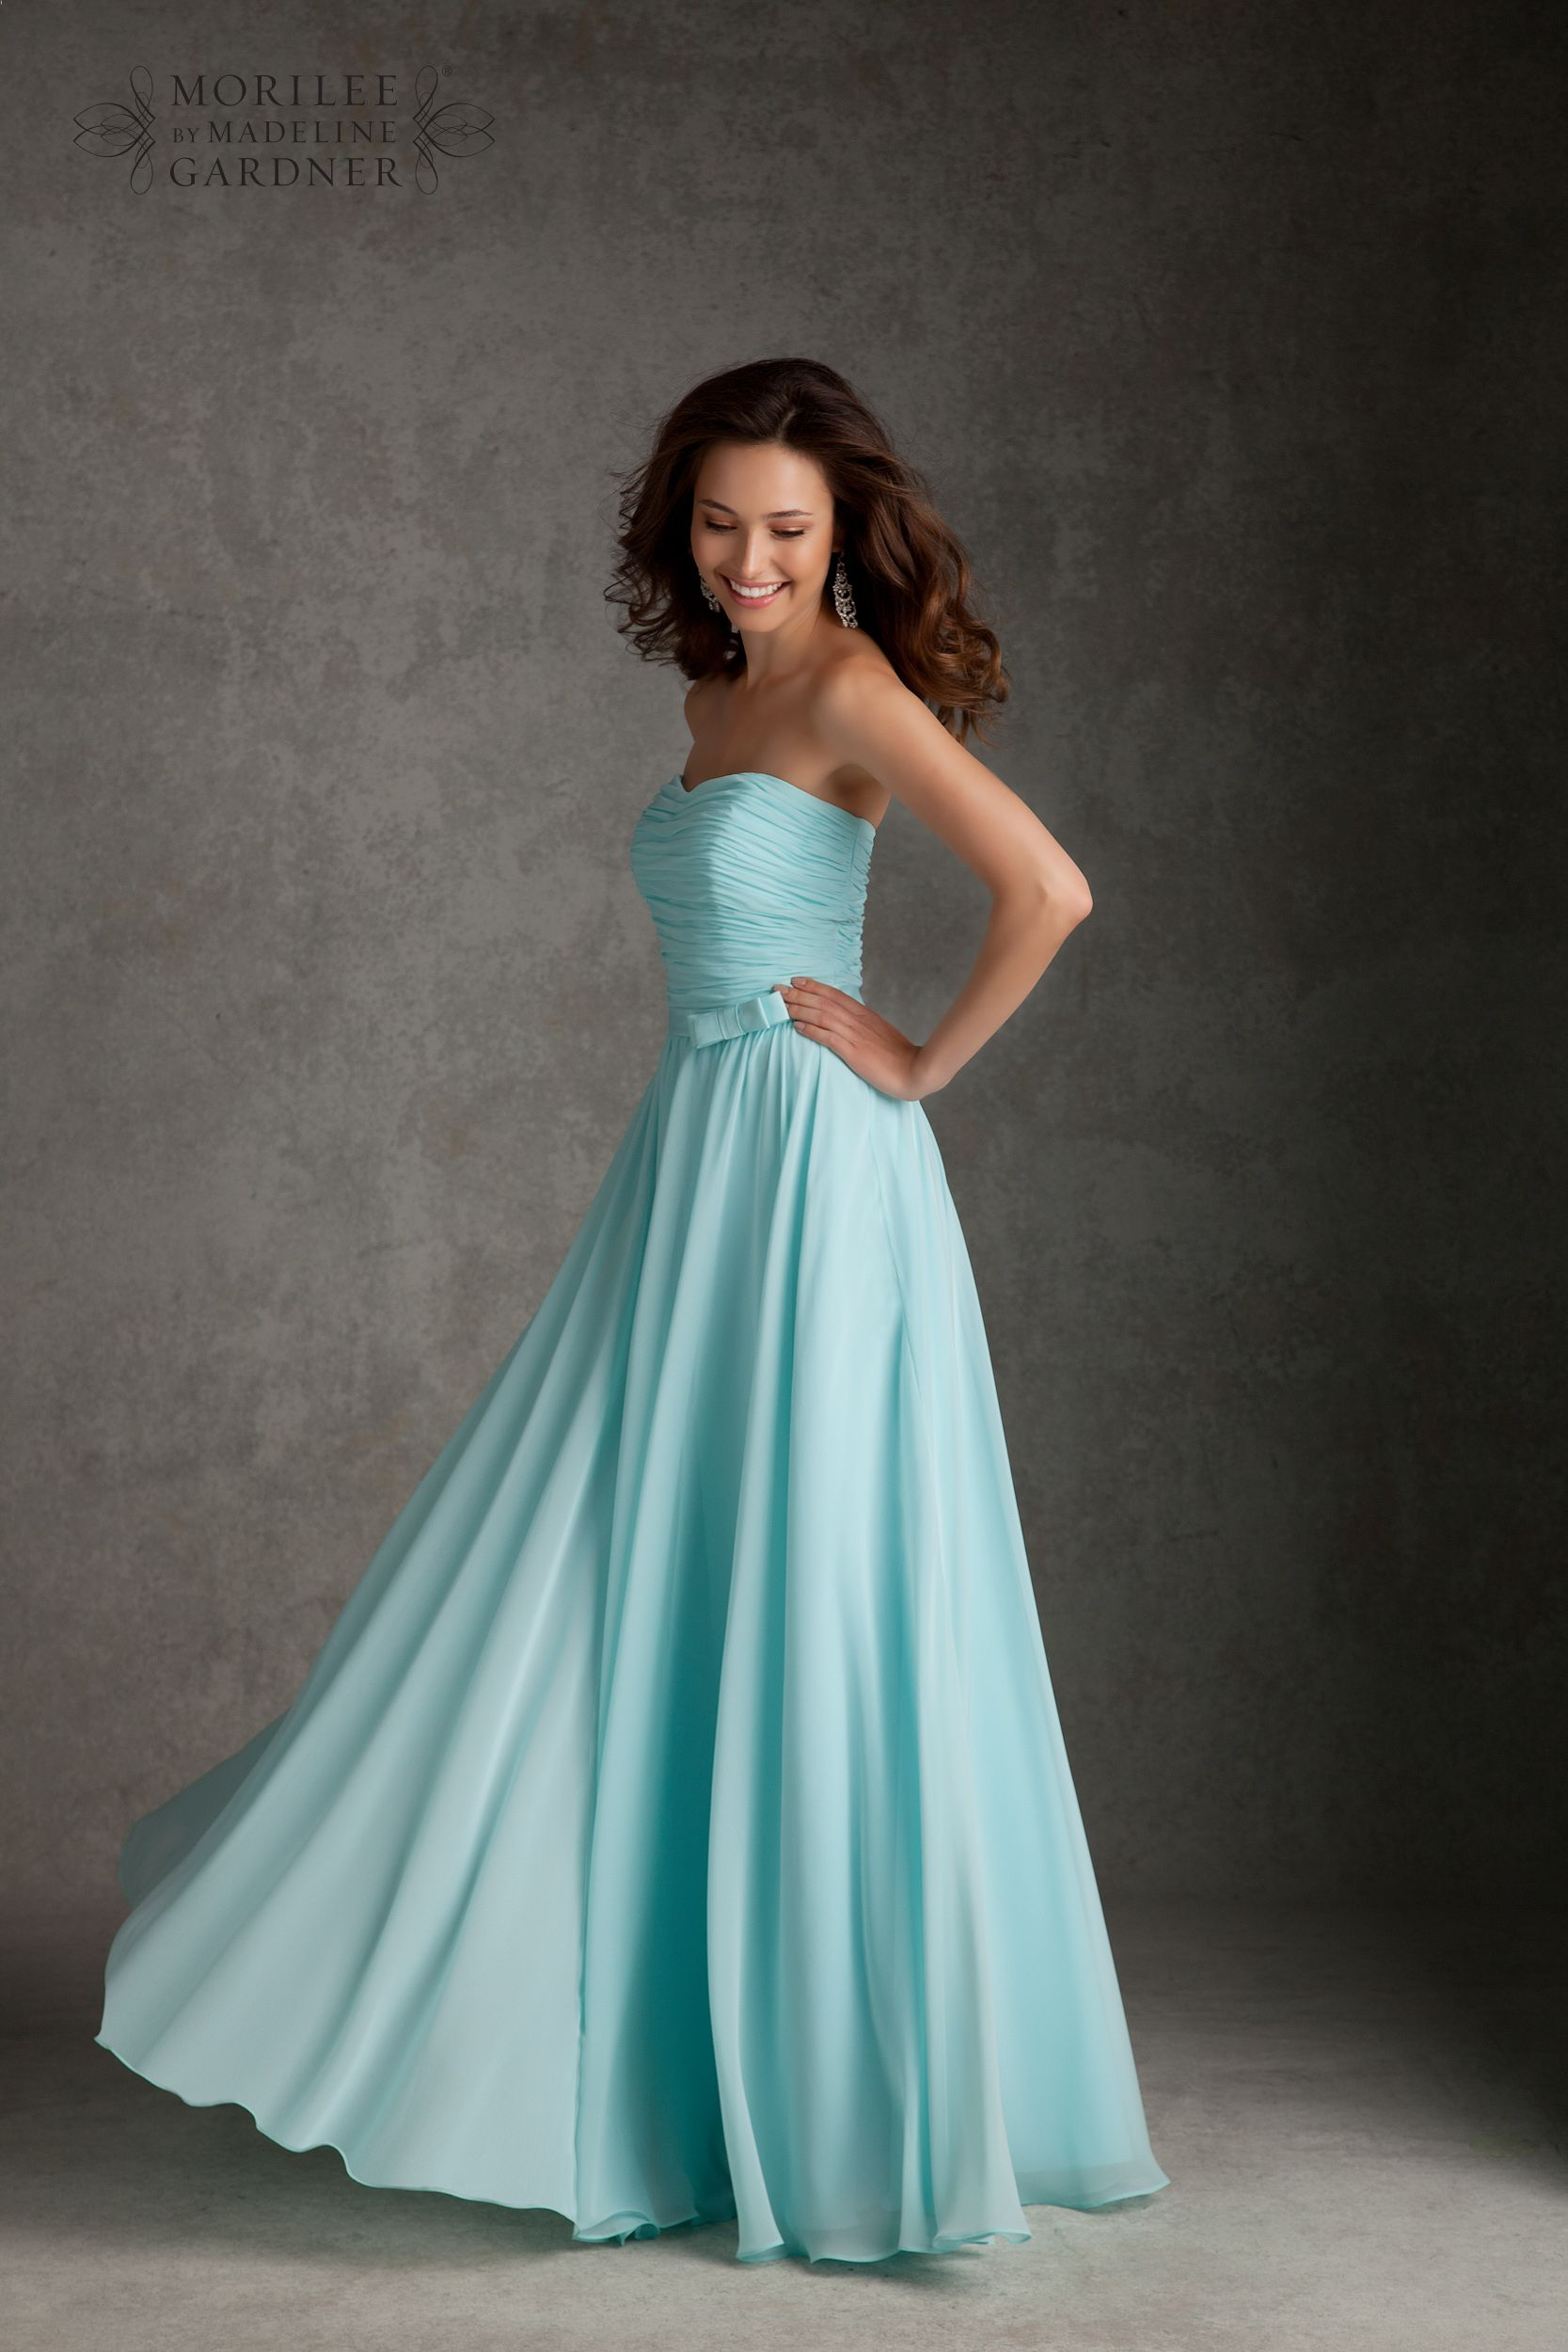 Charming bridesmaid dresses for abroad weddings photos wedding gallery of bridesmaid dresses for abroad weddings mori lee style 20423 bridesmaids pinterest mori lee and ombrellifo Gallery